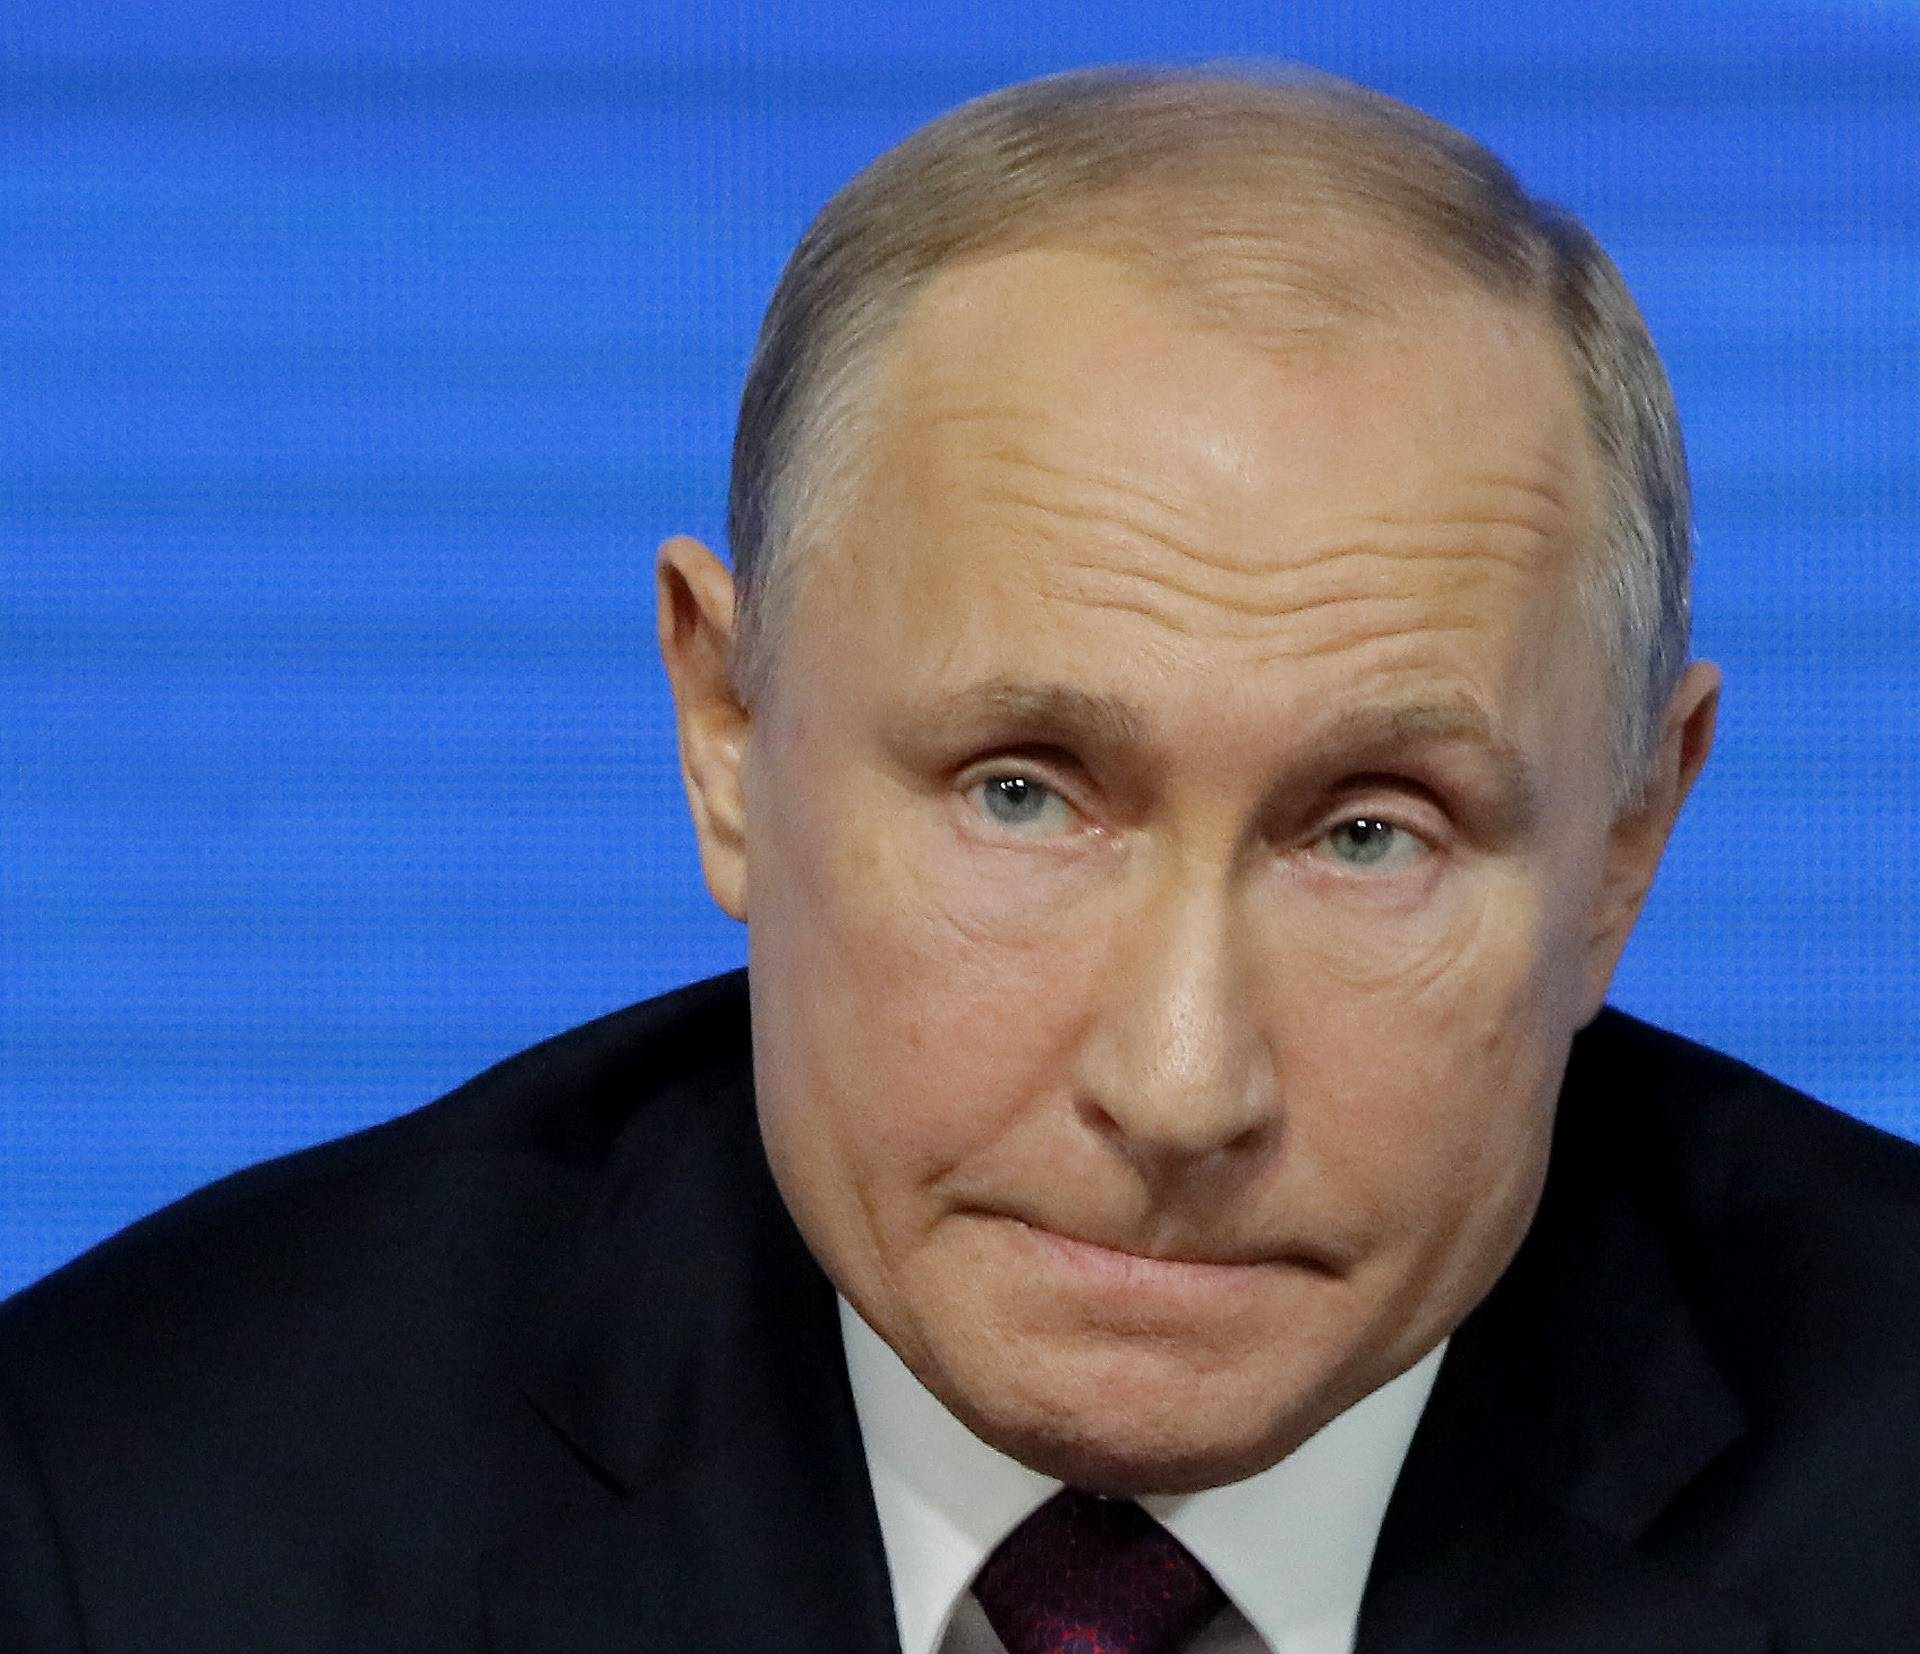 Russian President Putin listens during annual news conference in Moscow